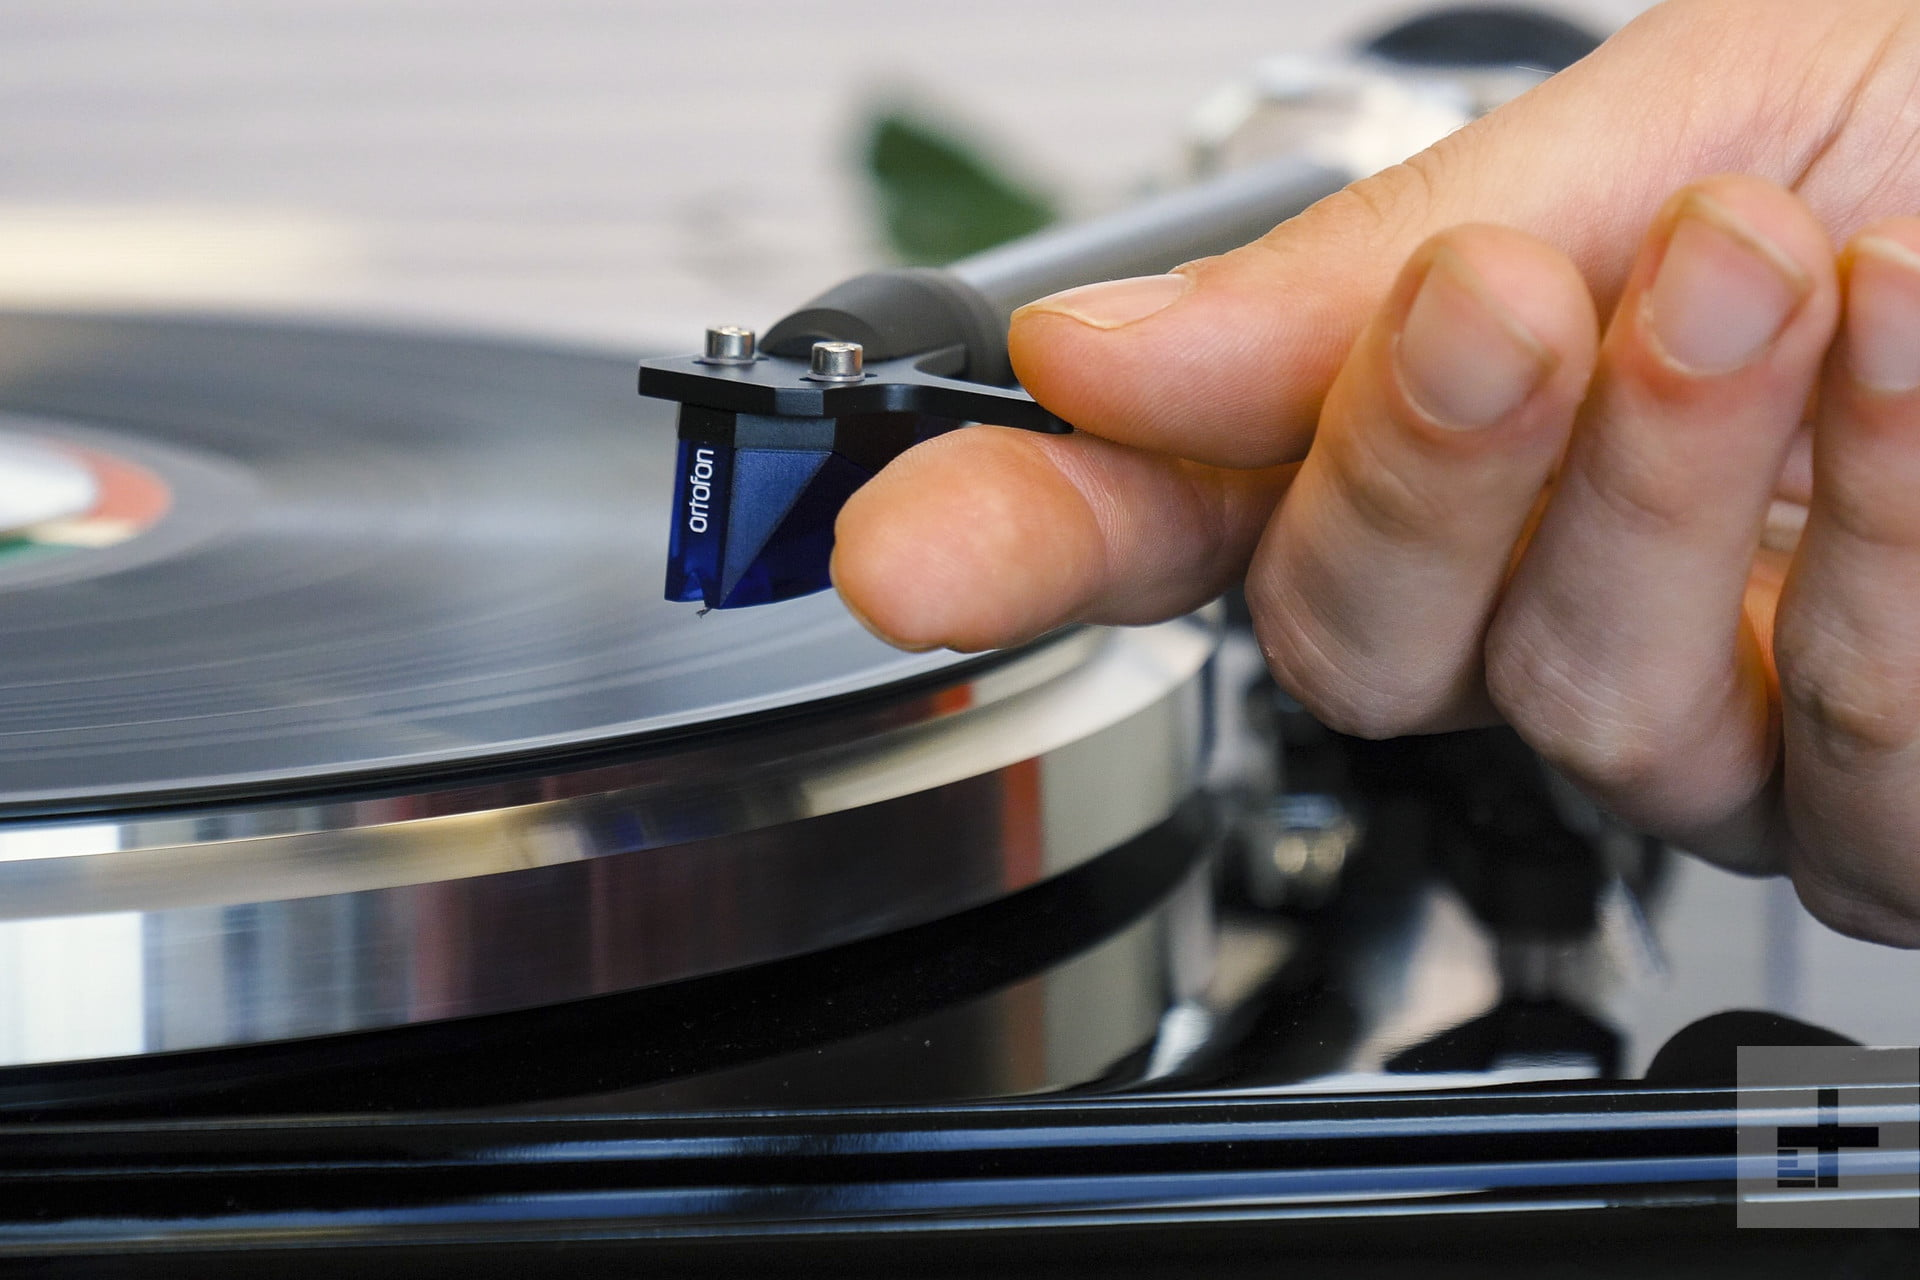 Best Turntable 2019 The Best Turntables for 2019 | Digital Trends